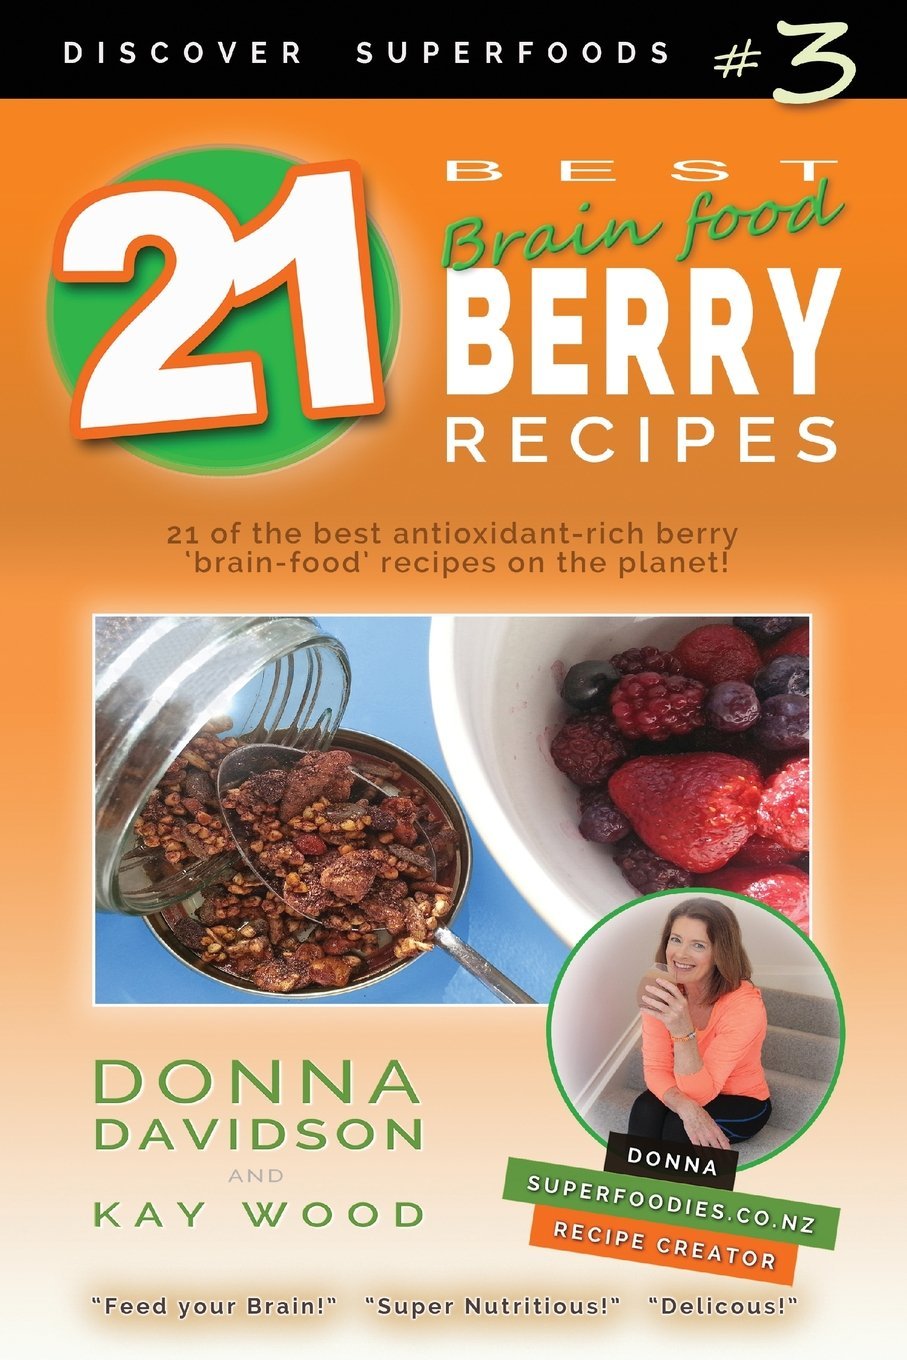 21 best brain food berry recipes discover superfoods 3 21 of the 21 best brain food berry recipes discover superfoods 3 21 of the best antioxidant rich berry brain food recipes on the planet forumfinder Gallery